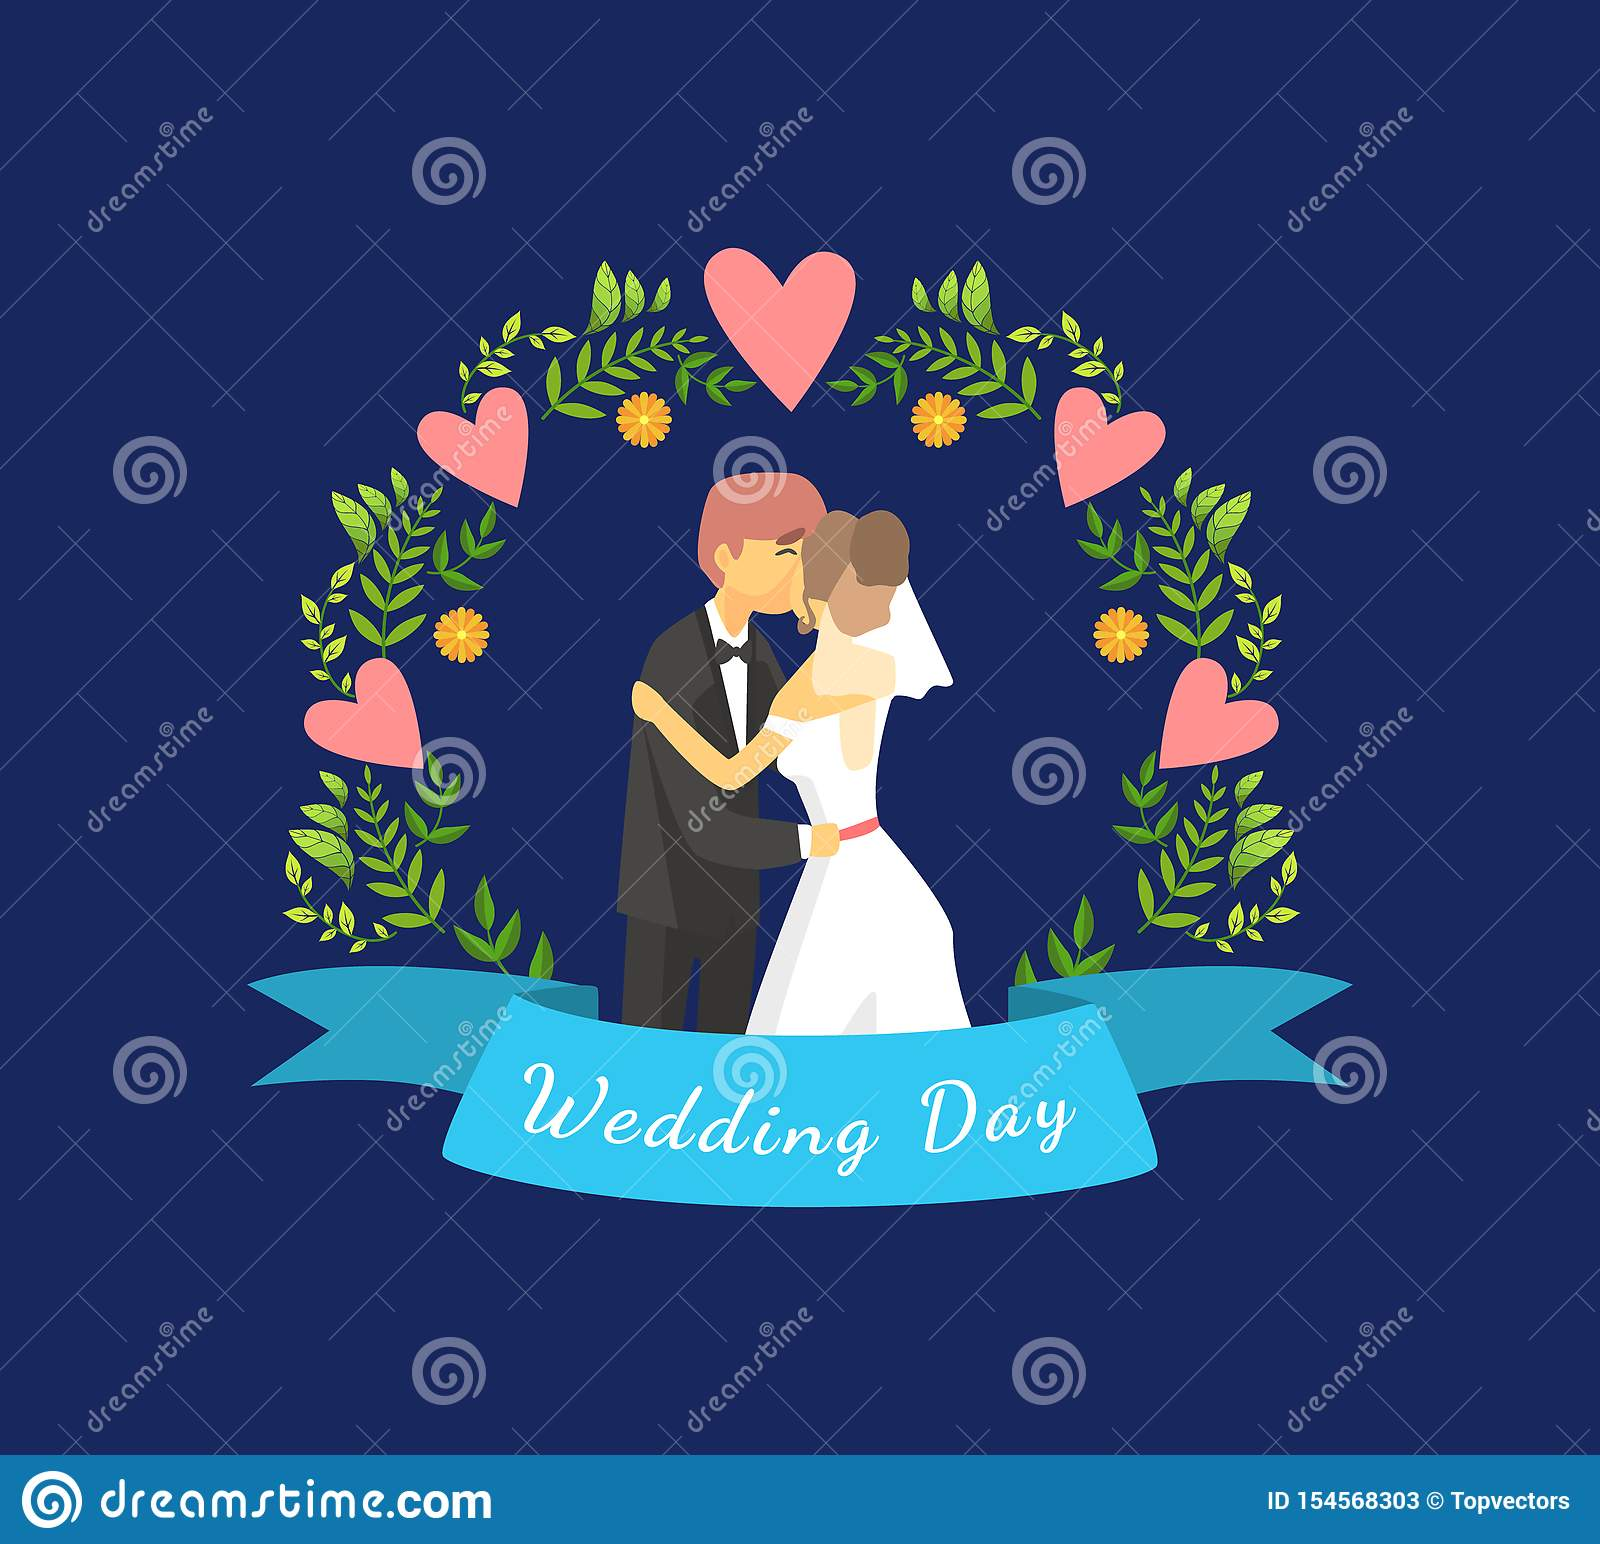 Wedding Day Banner Template With Just Married Couple